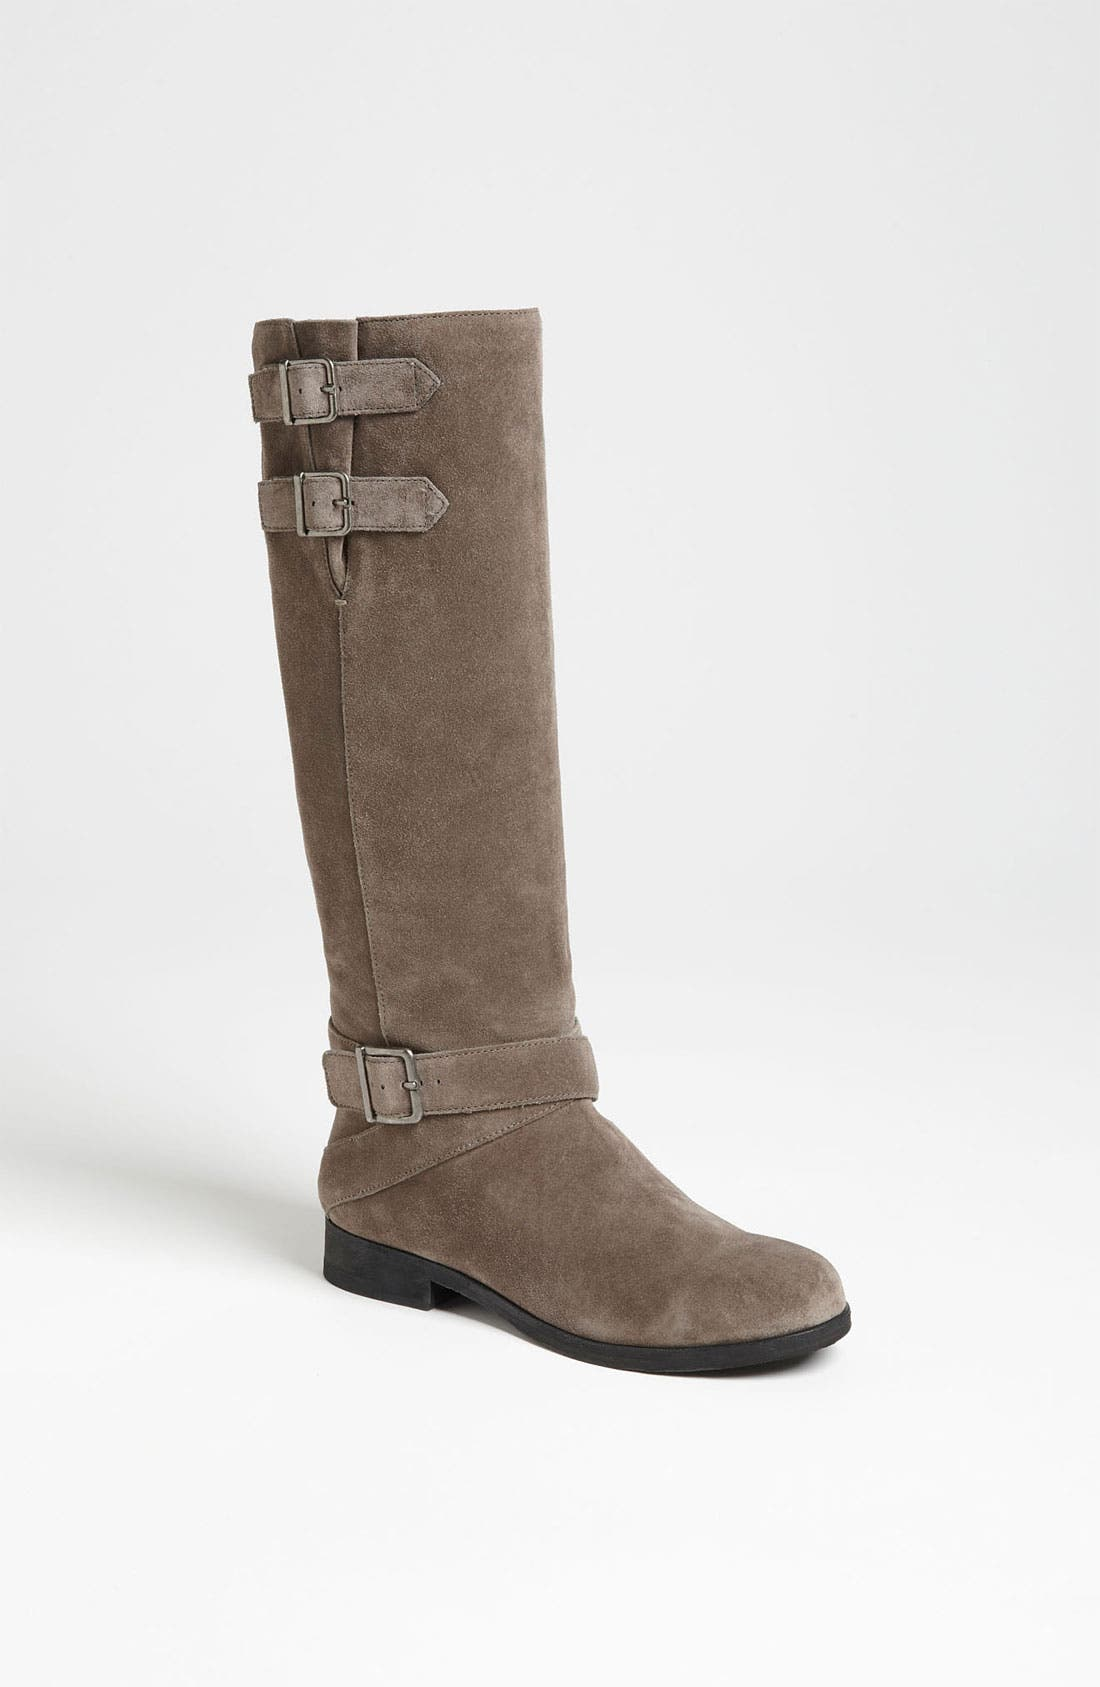 Alternate Image 1 Selected - Eileen Fisher 'Lead' Boot